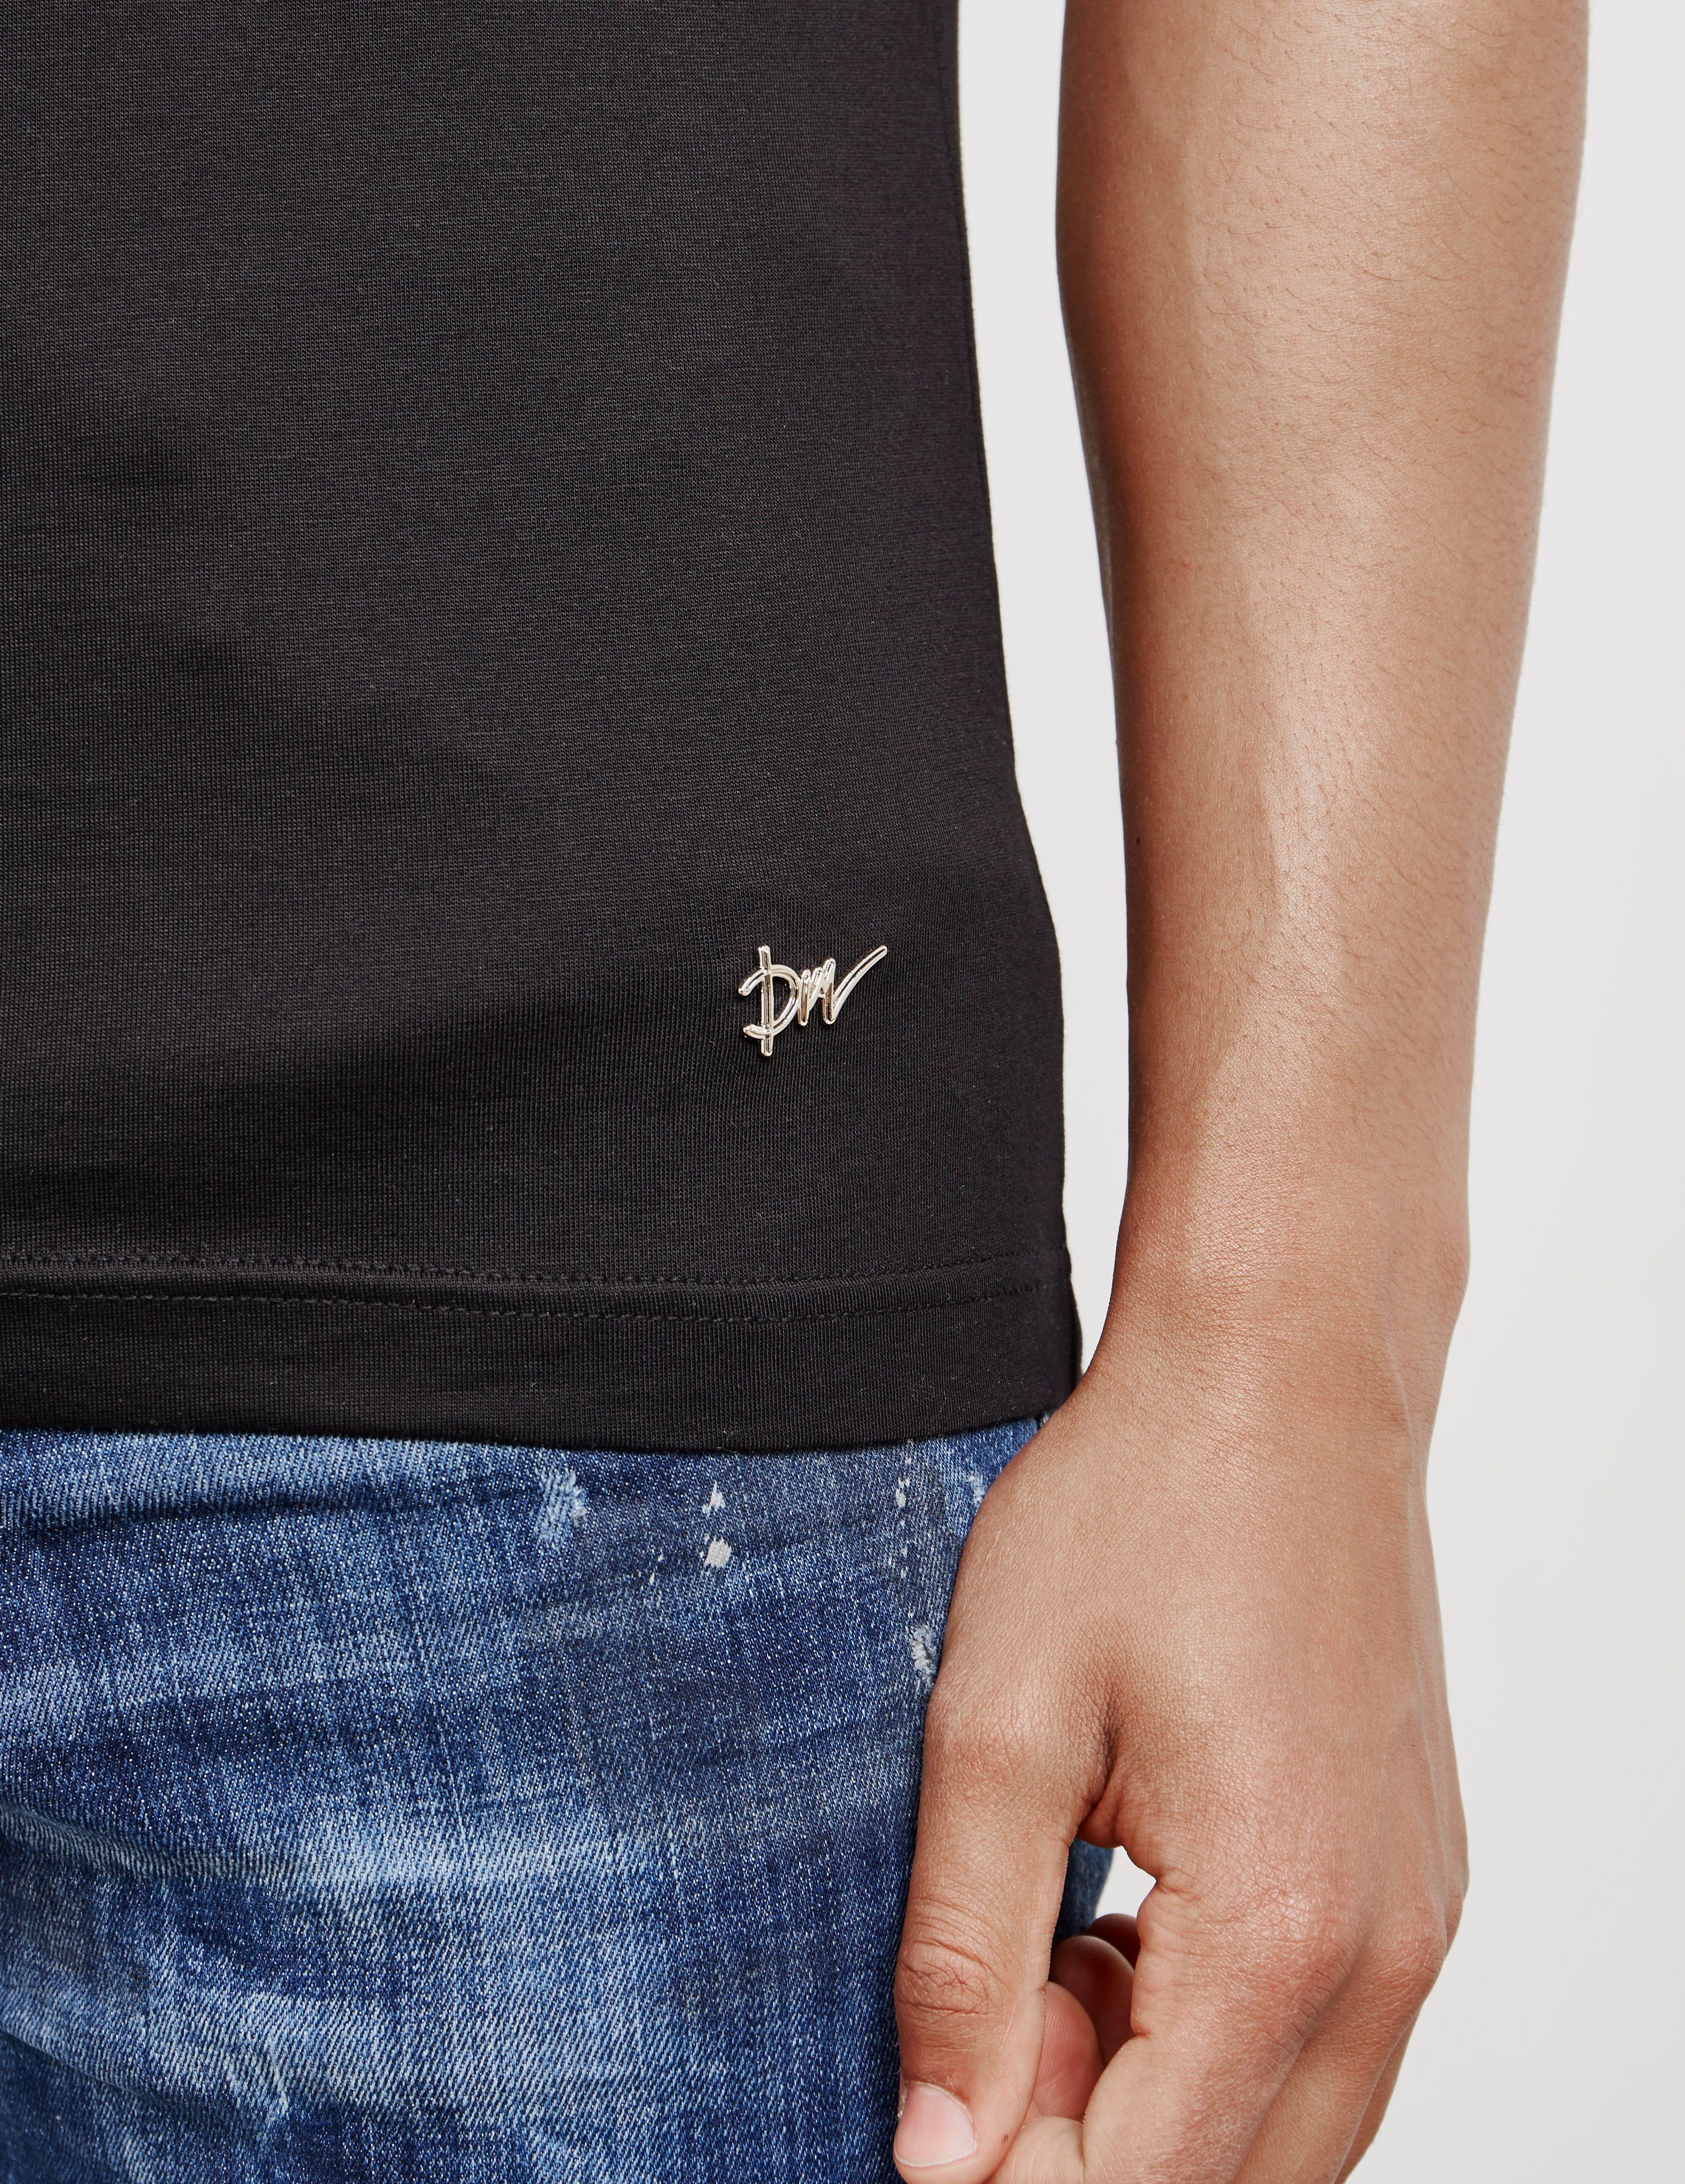 Dimoral Dragonfish Short Sleeve T-Shirt - Online Exclusive